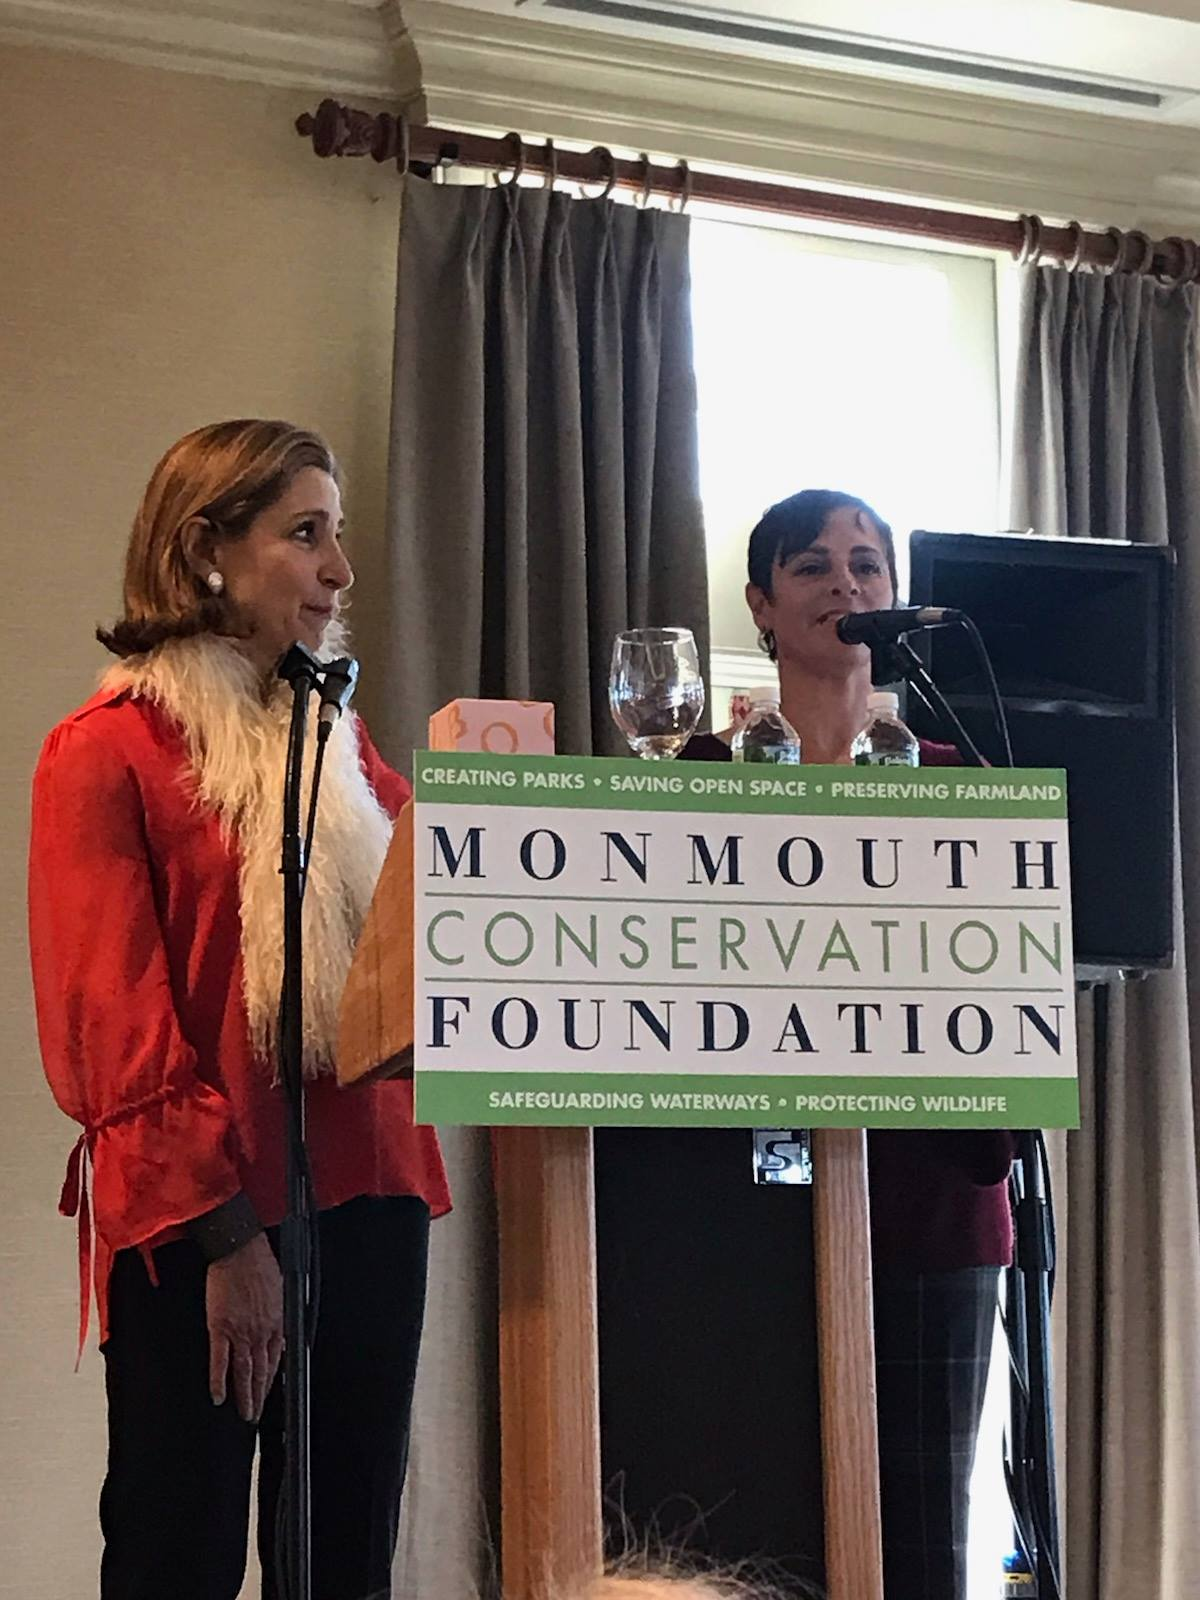 Monmouth Conservation Foundation2